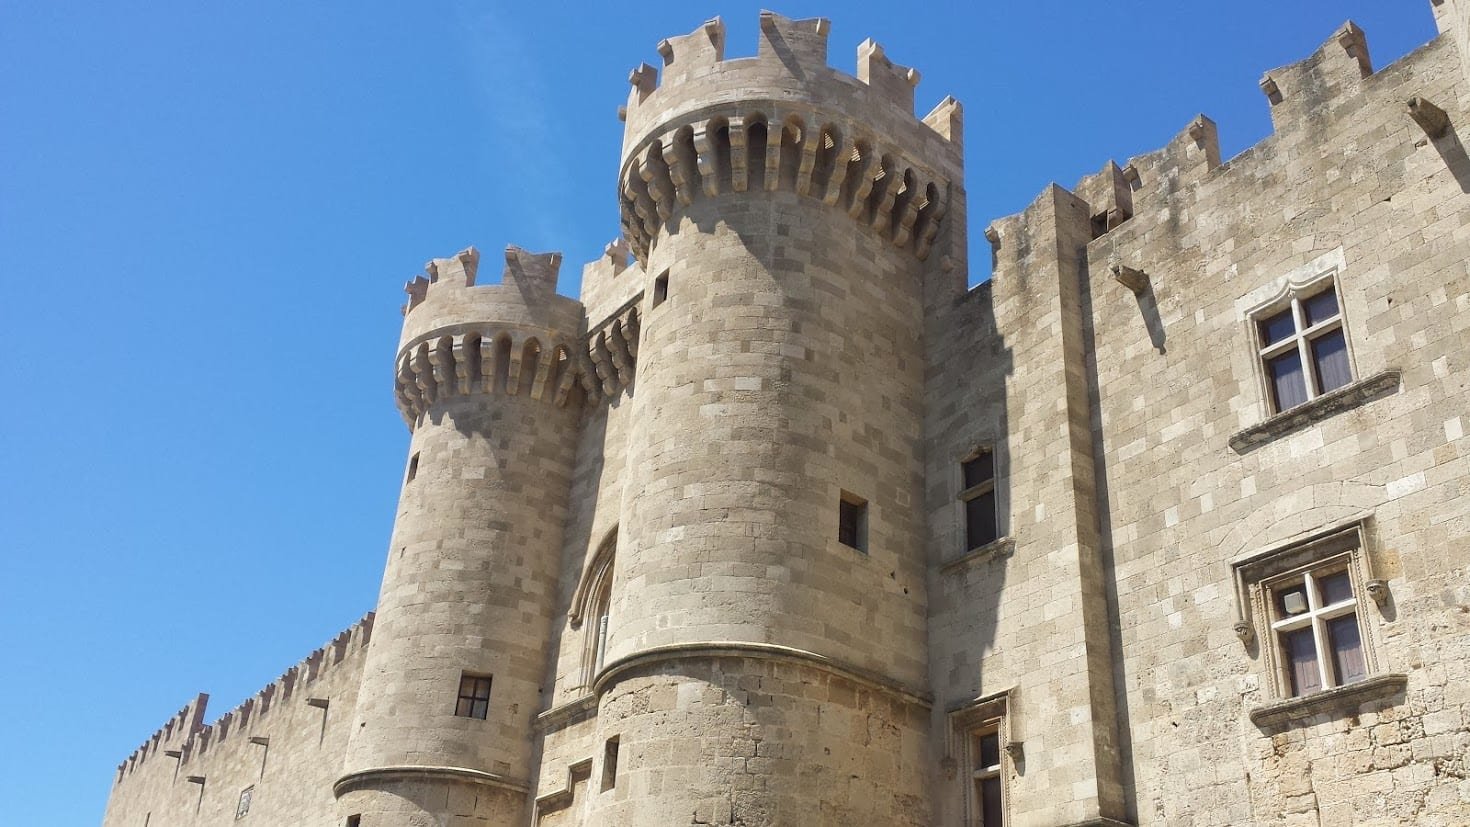 Rhodes castle is one of the most well known landmarks of Greece